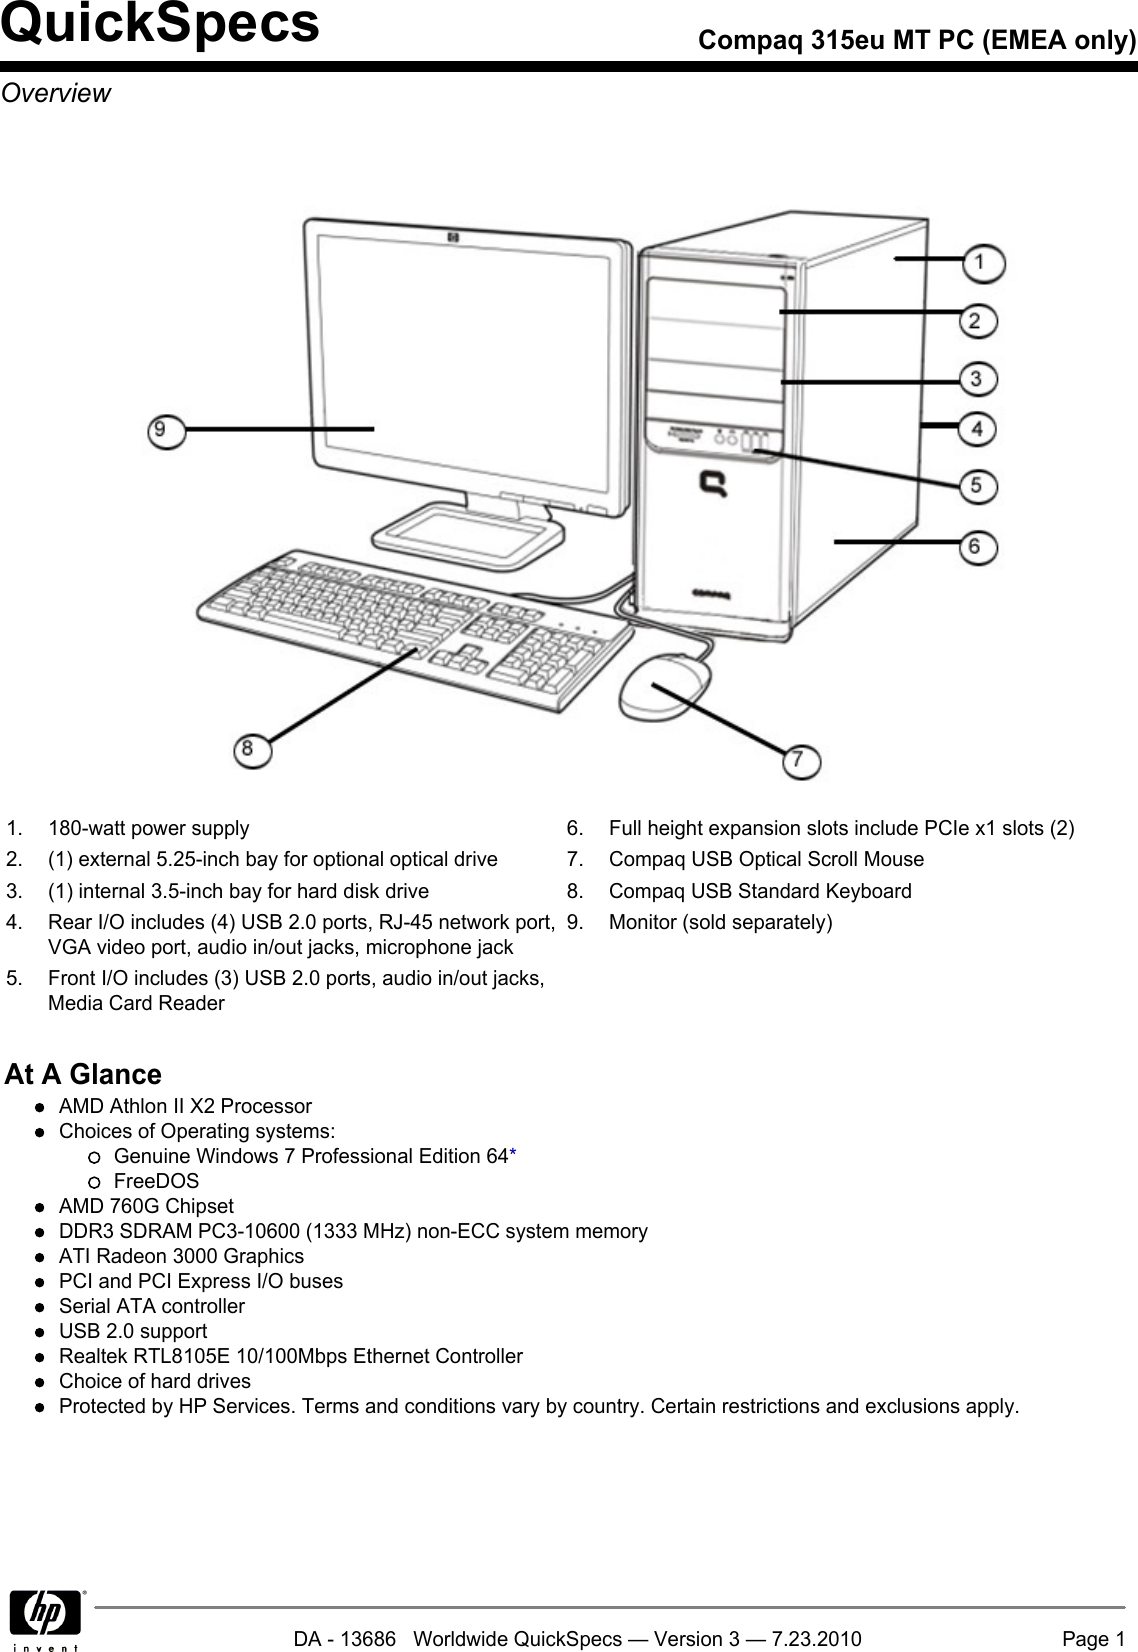 Hp 315eu Users Manual Compaq Mt Pc Emea Only Wiring Diagram